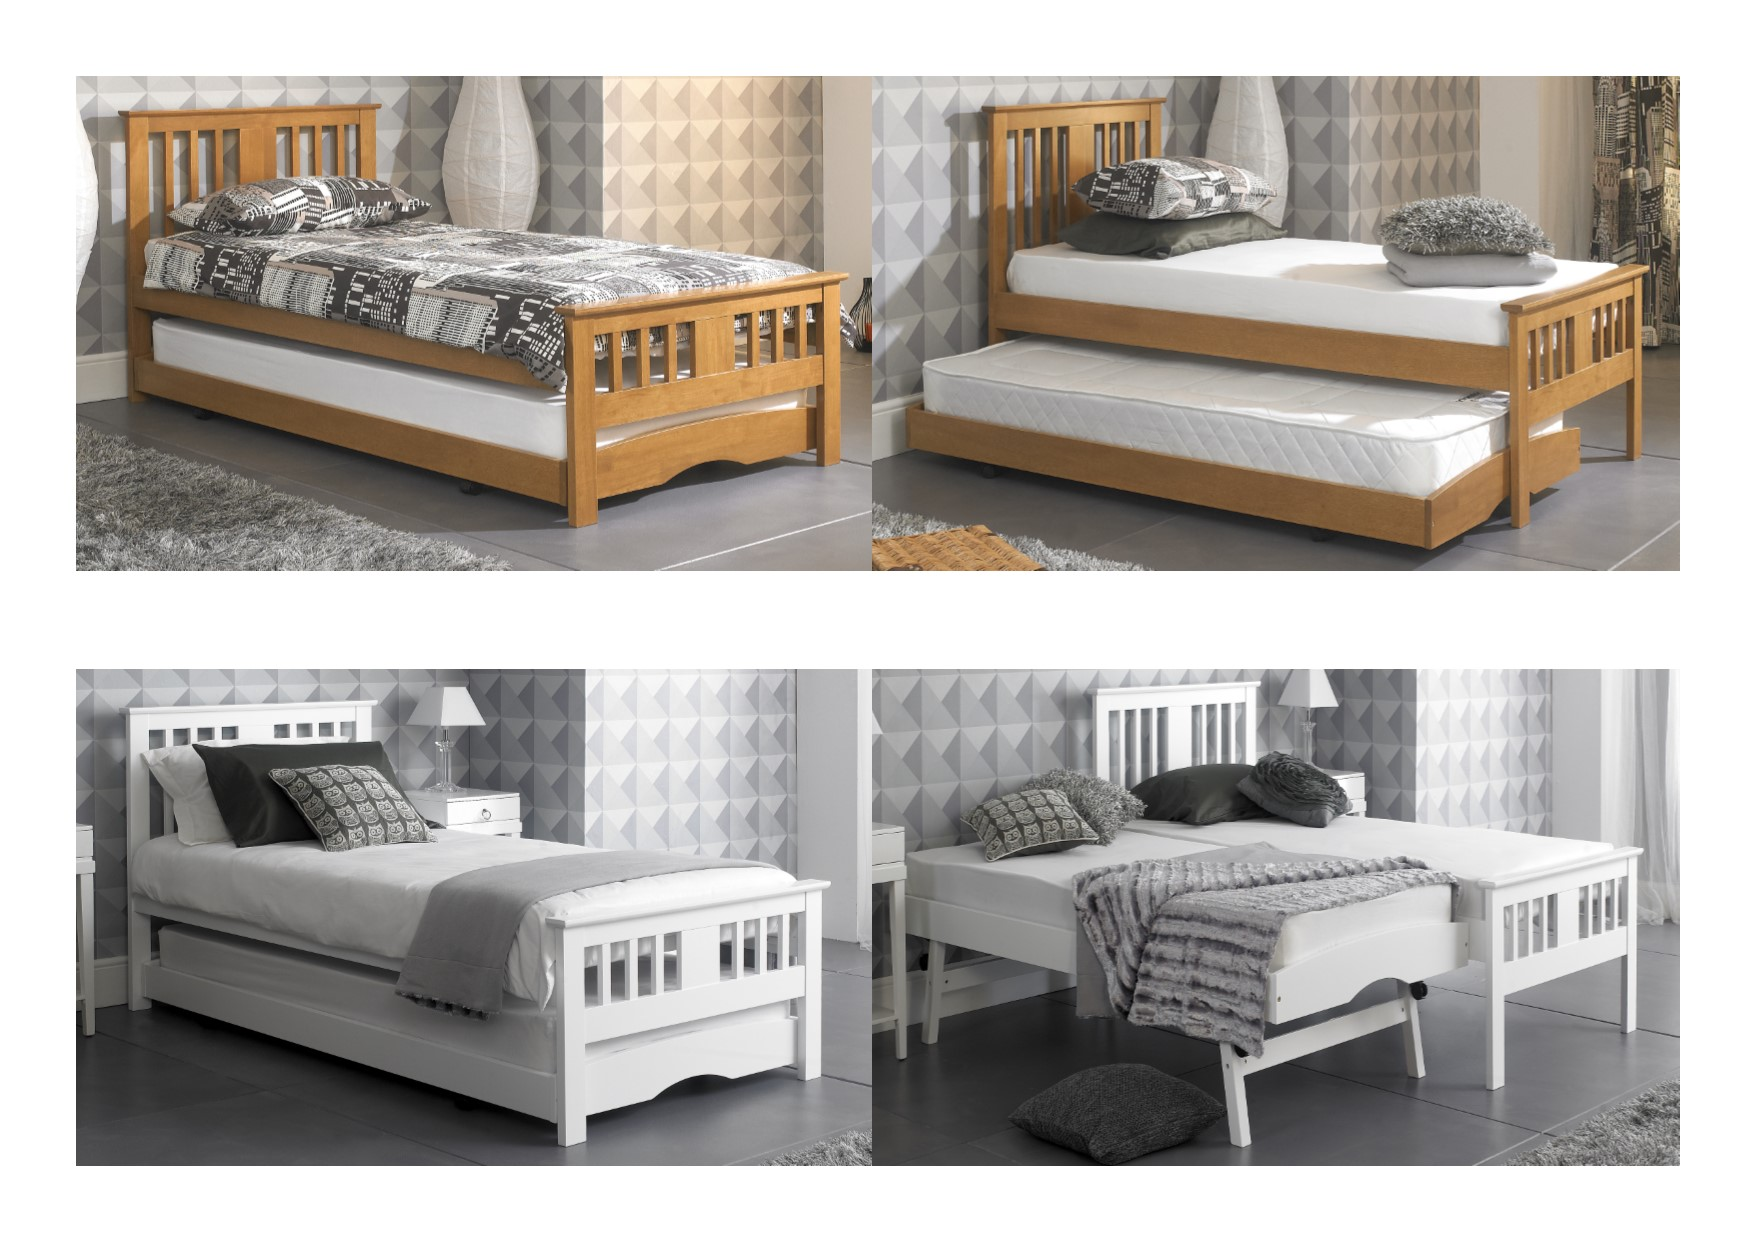 artisan beds rubberwood single guest bed with trundle 17073 | guest 20bed 20main 20pic